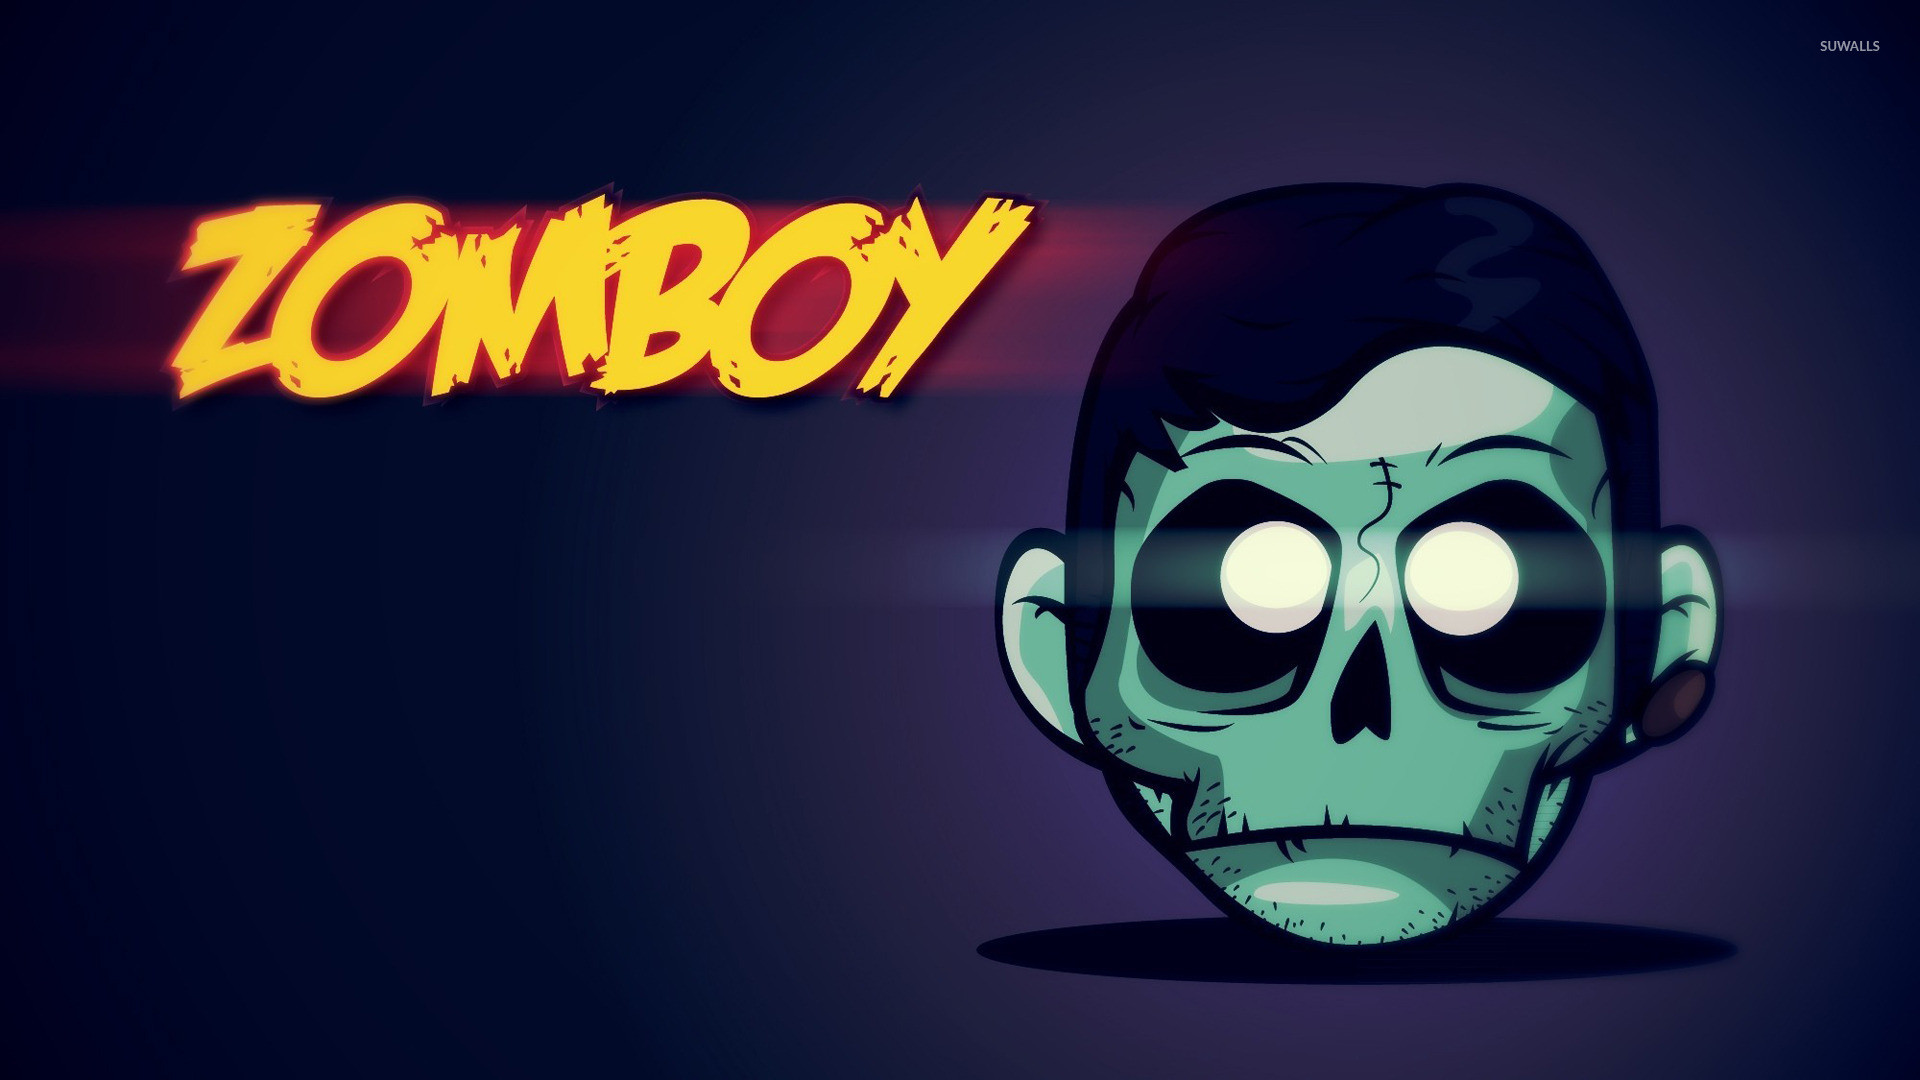 Zomboy Wallpapers 82 images 1920x1080